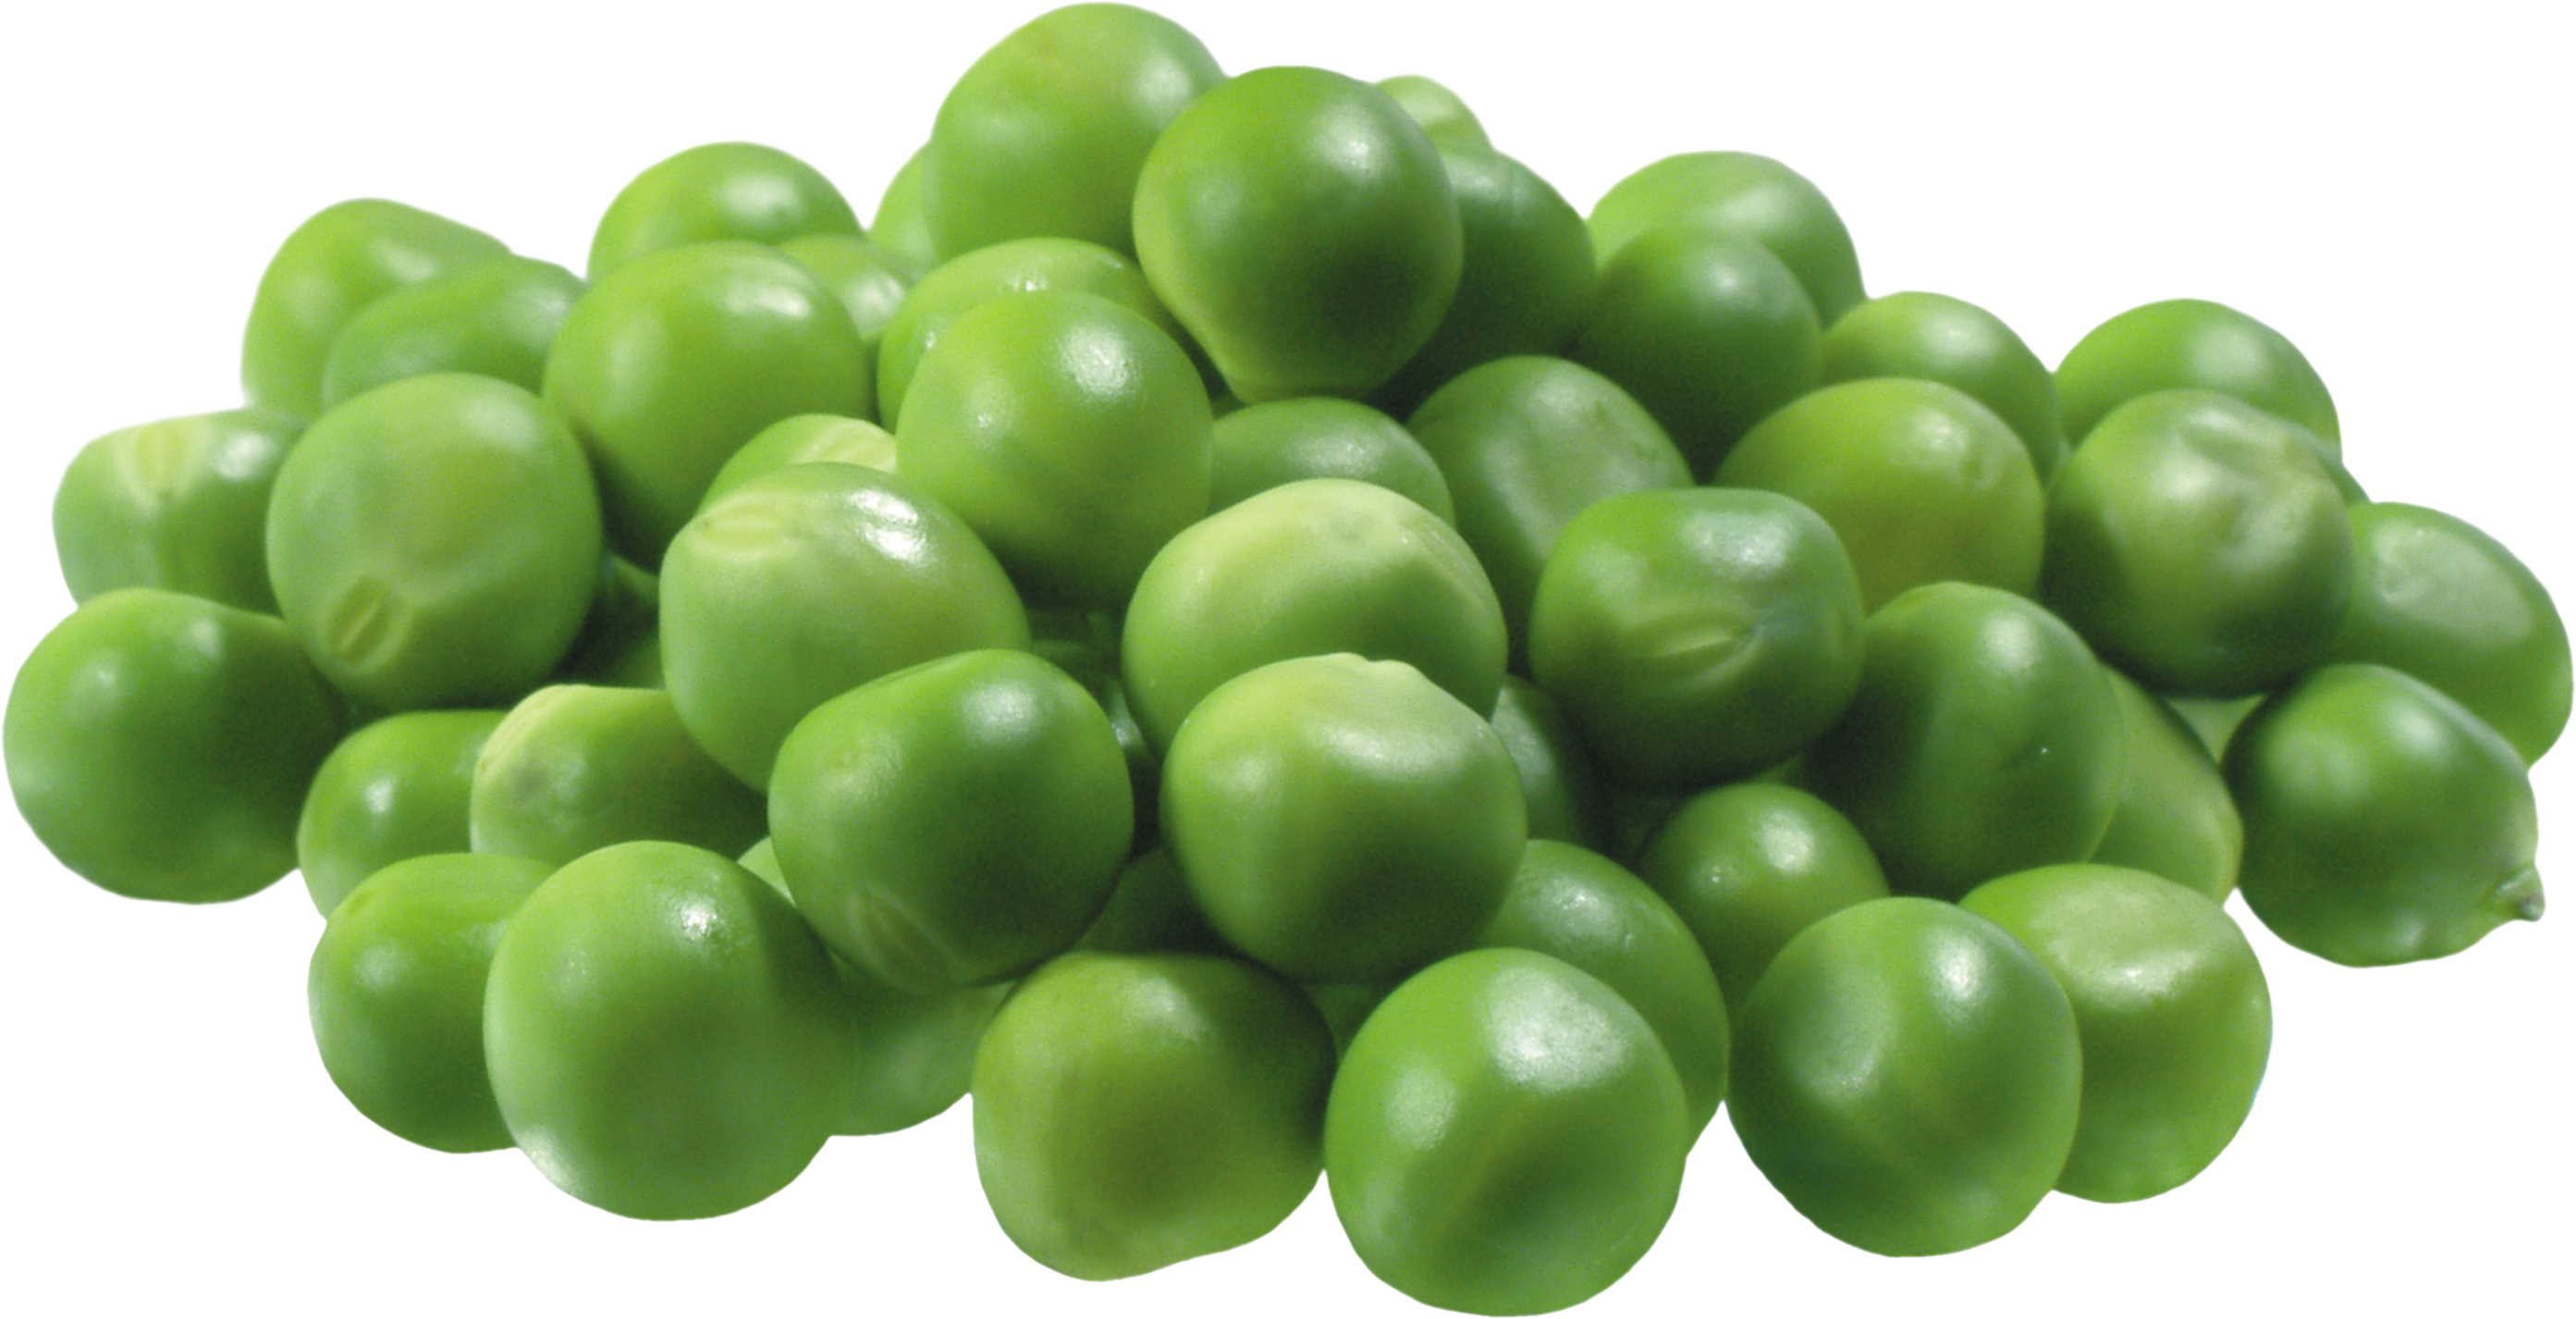 Georgia clipart fruit. Pea png images free